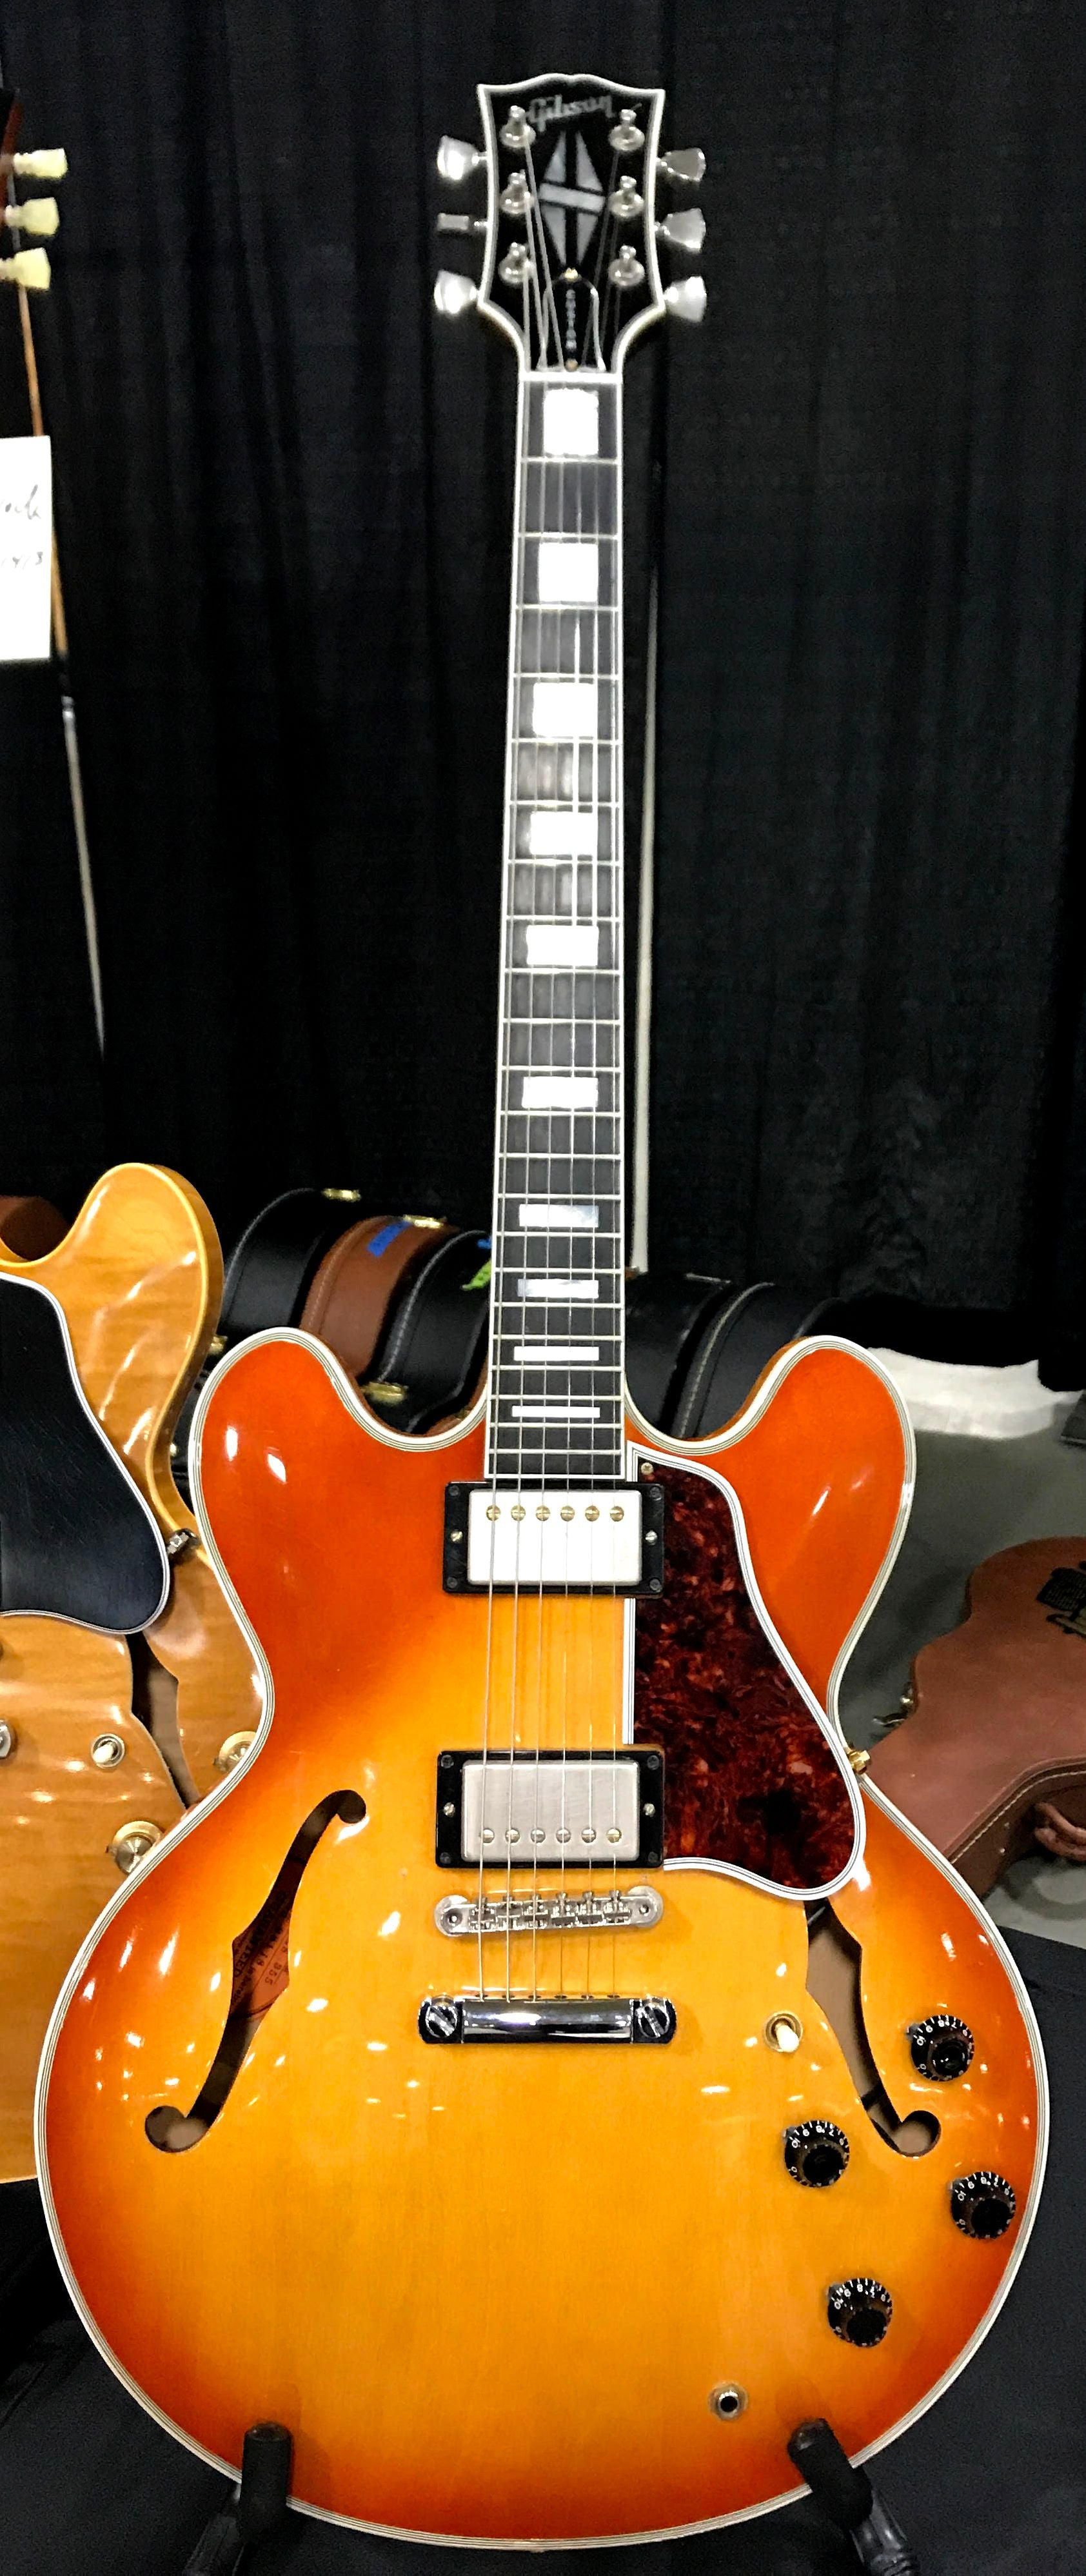 Gibson CS ES 355 Mono - Gorgeous Sunburst****SOLD****